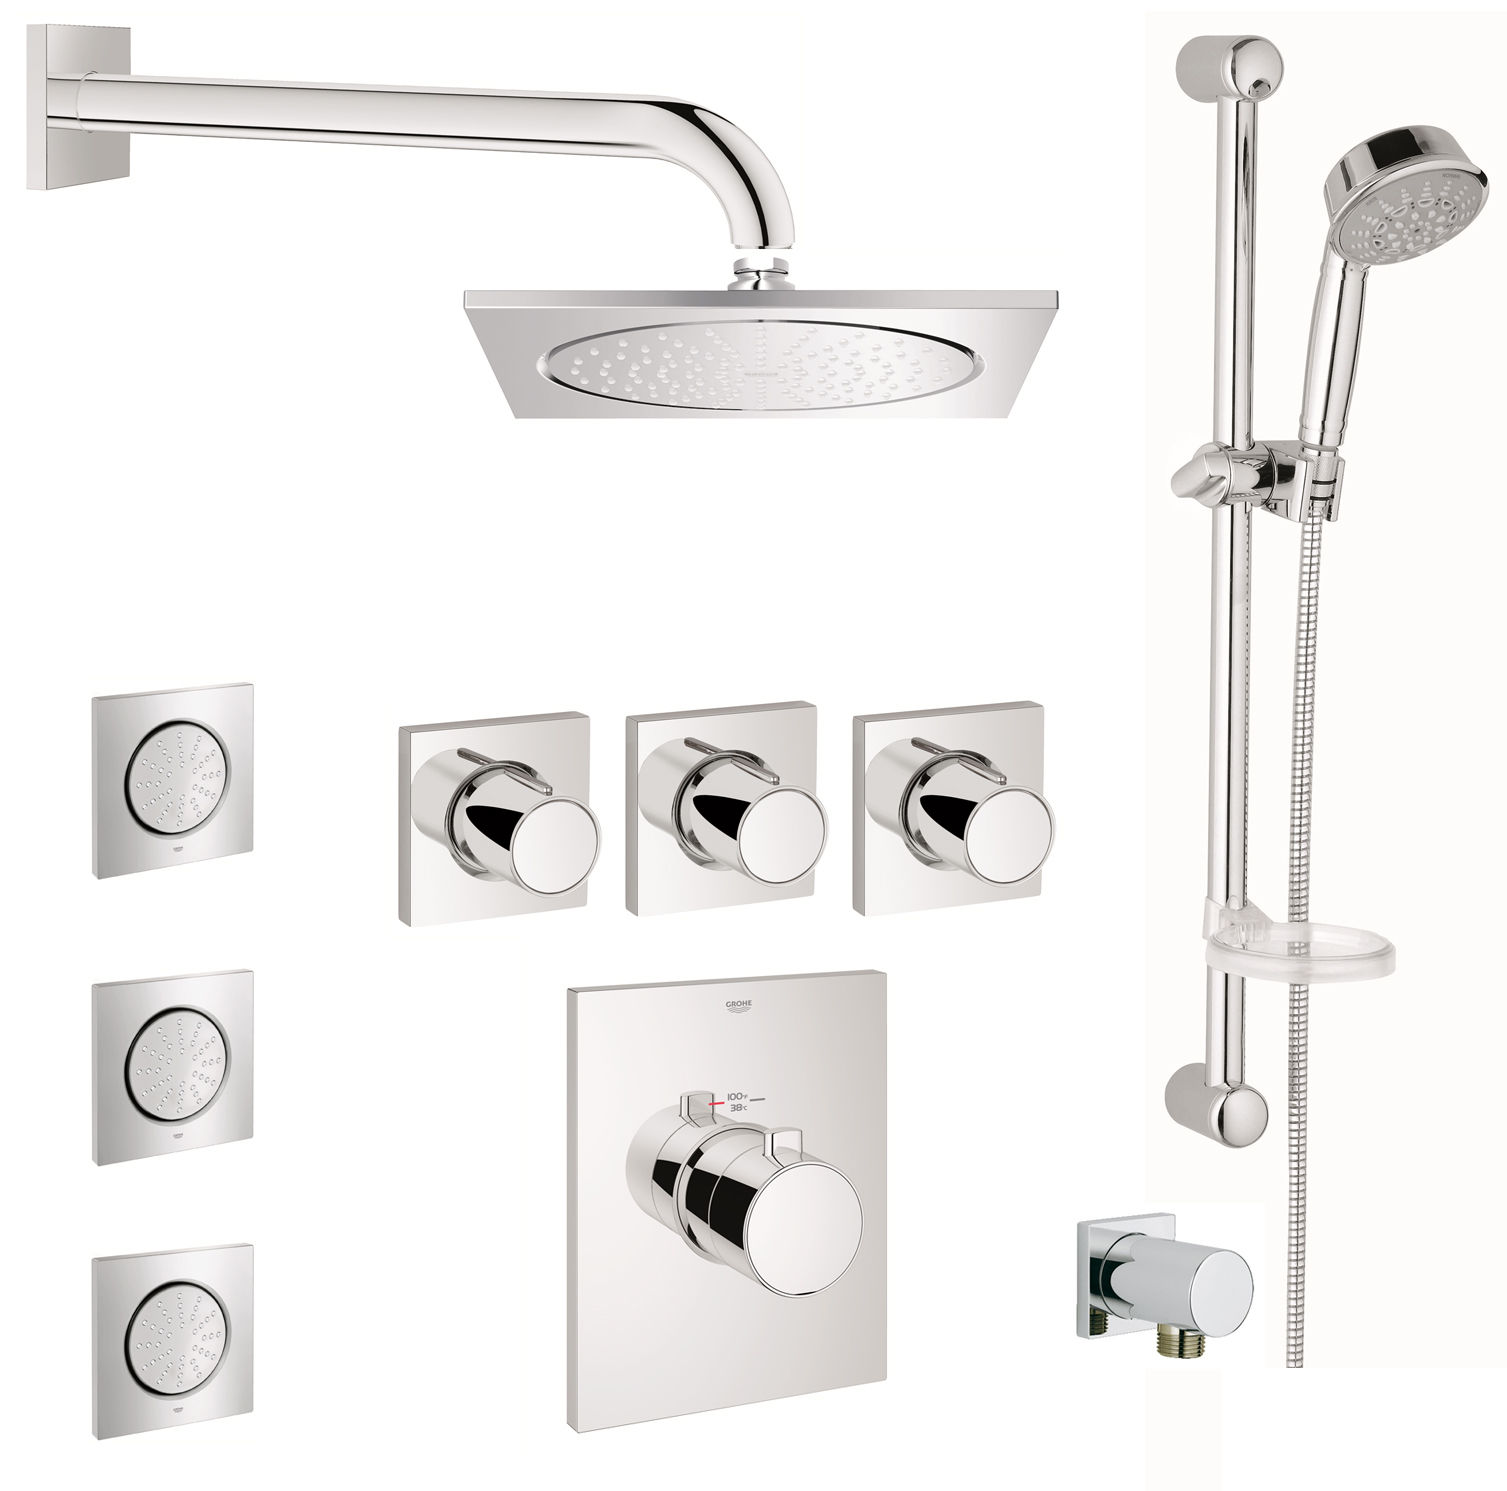 euphoria dp rail massage grohe set about shower